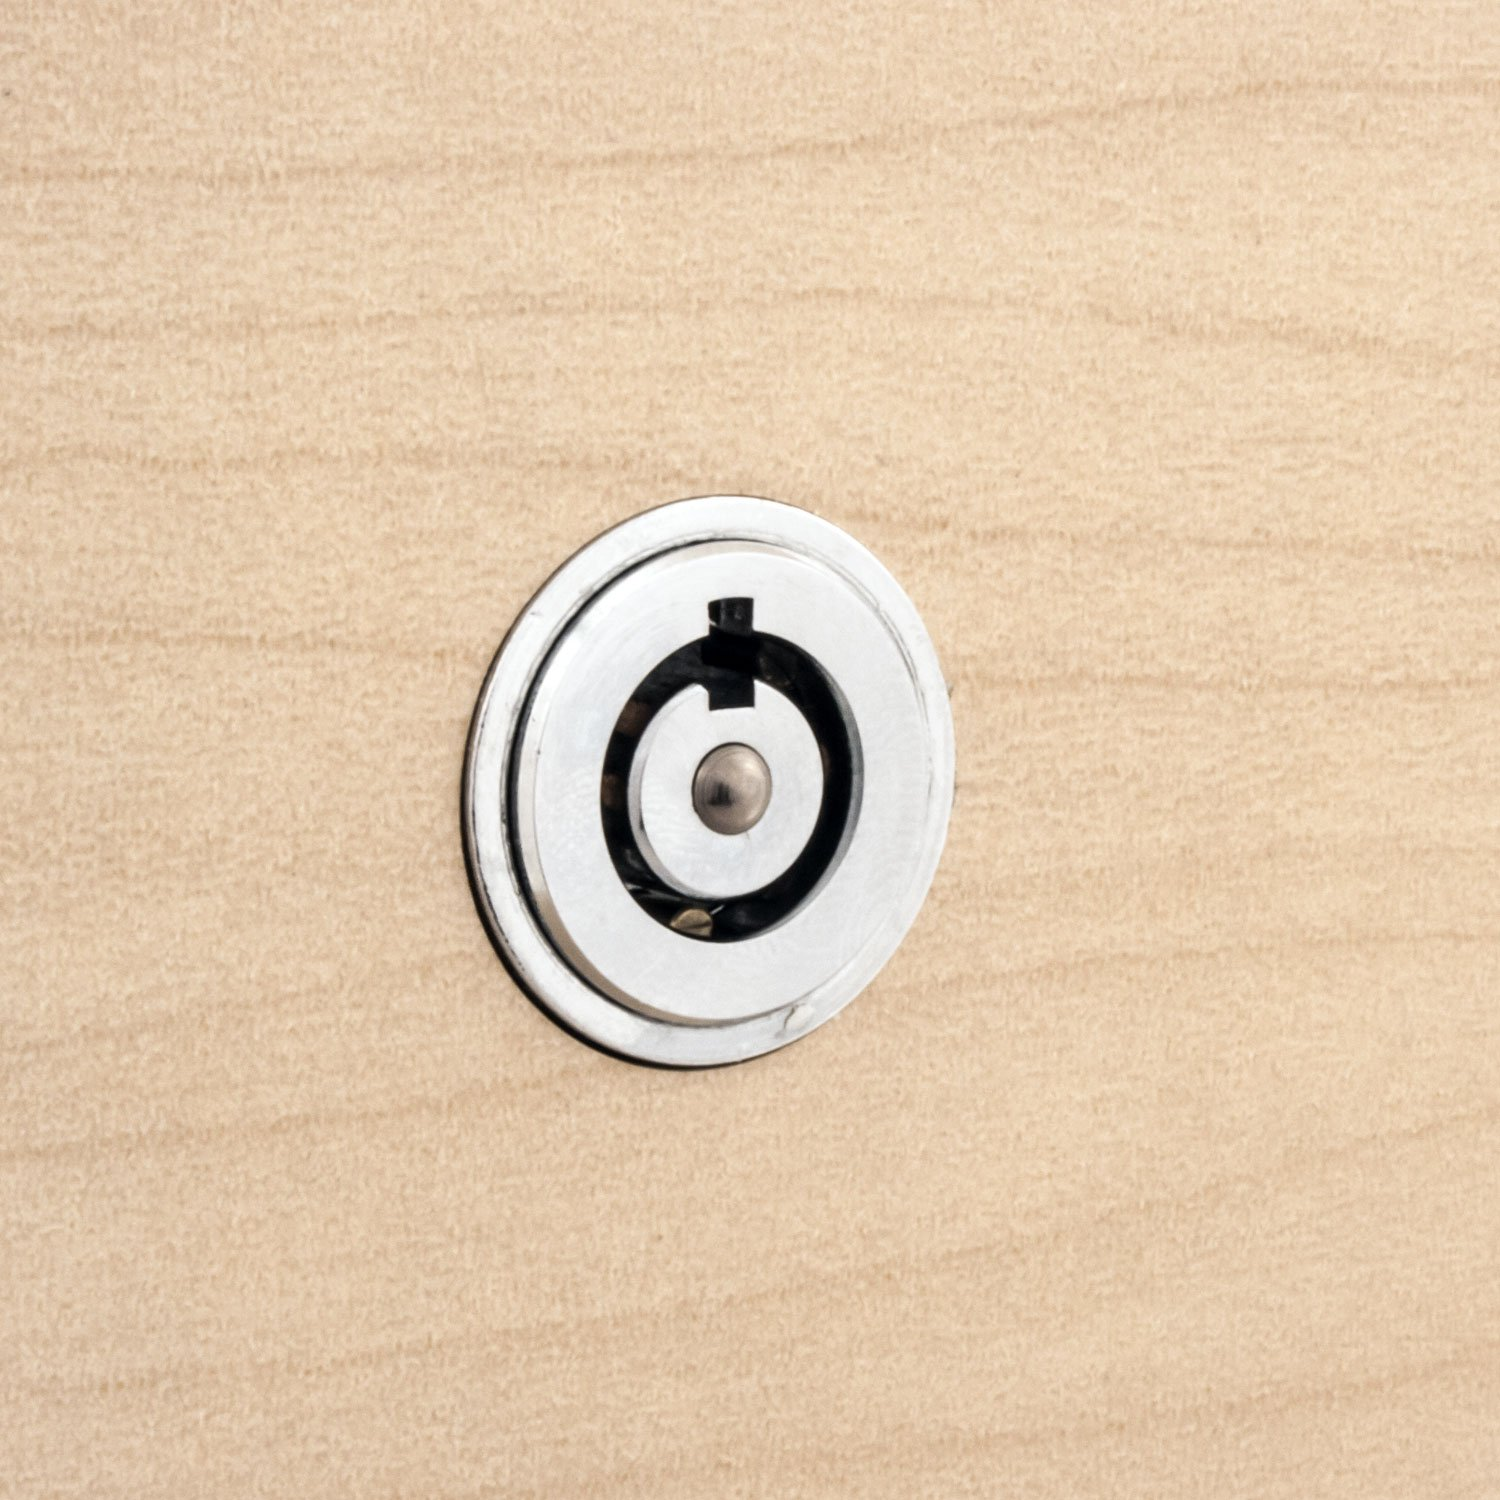 FJM Security 2612L-KD Push Lock with Chrome Finish Keyed Different